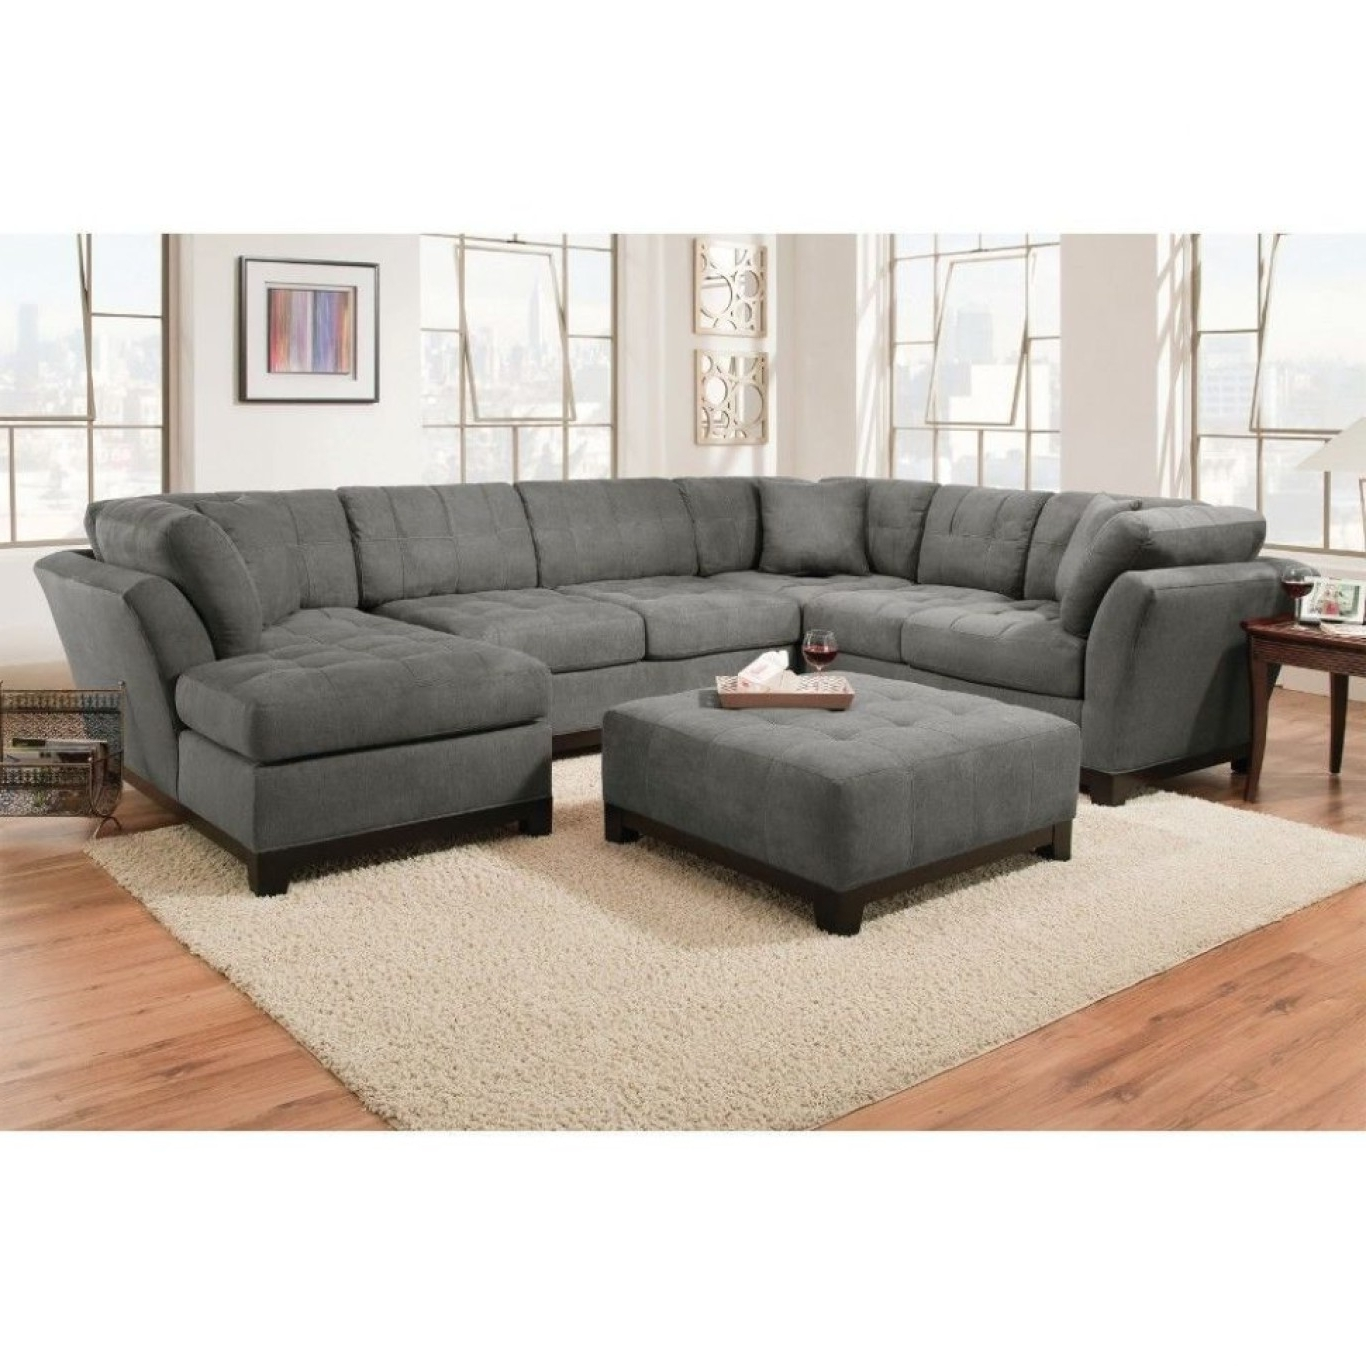 Furniture Row Sectional Sofas Throughout Well Known Furniture Row Sectionals (View 4 of 15)